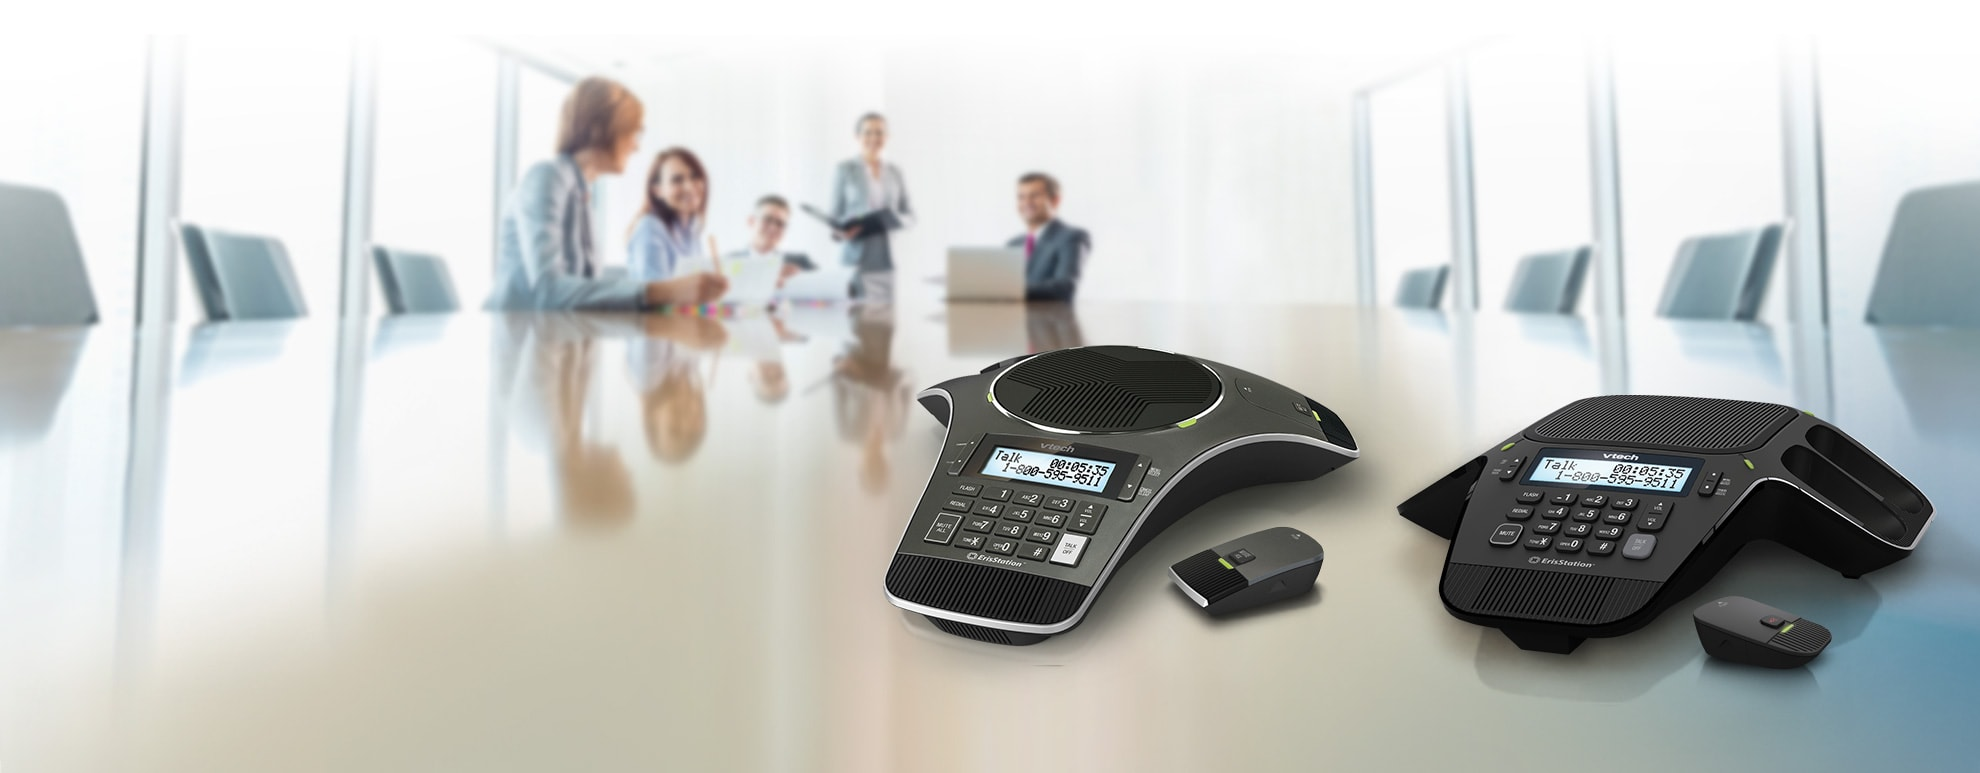 A new era in audio conferencing